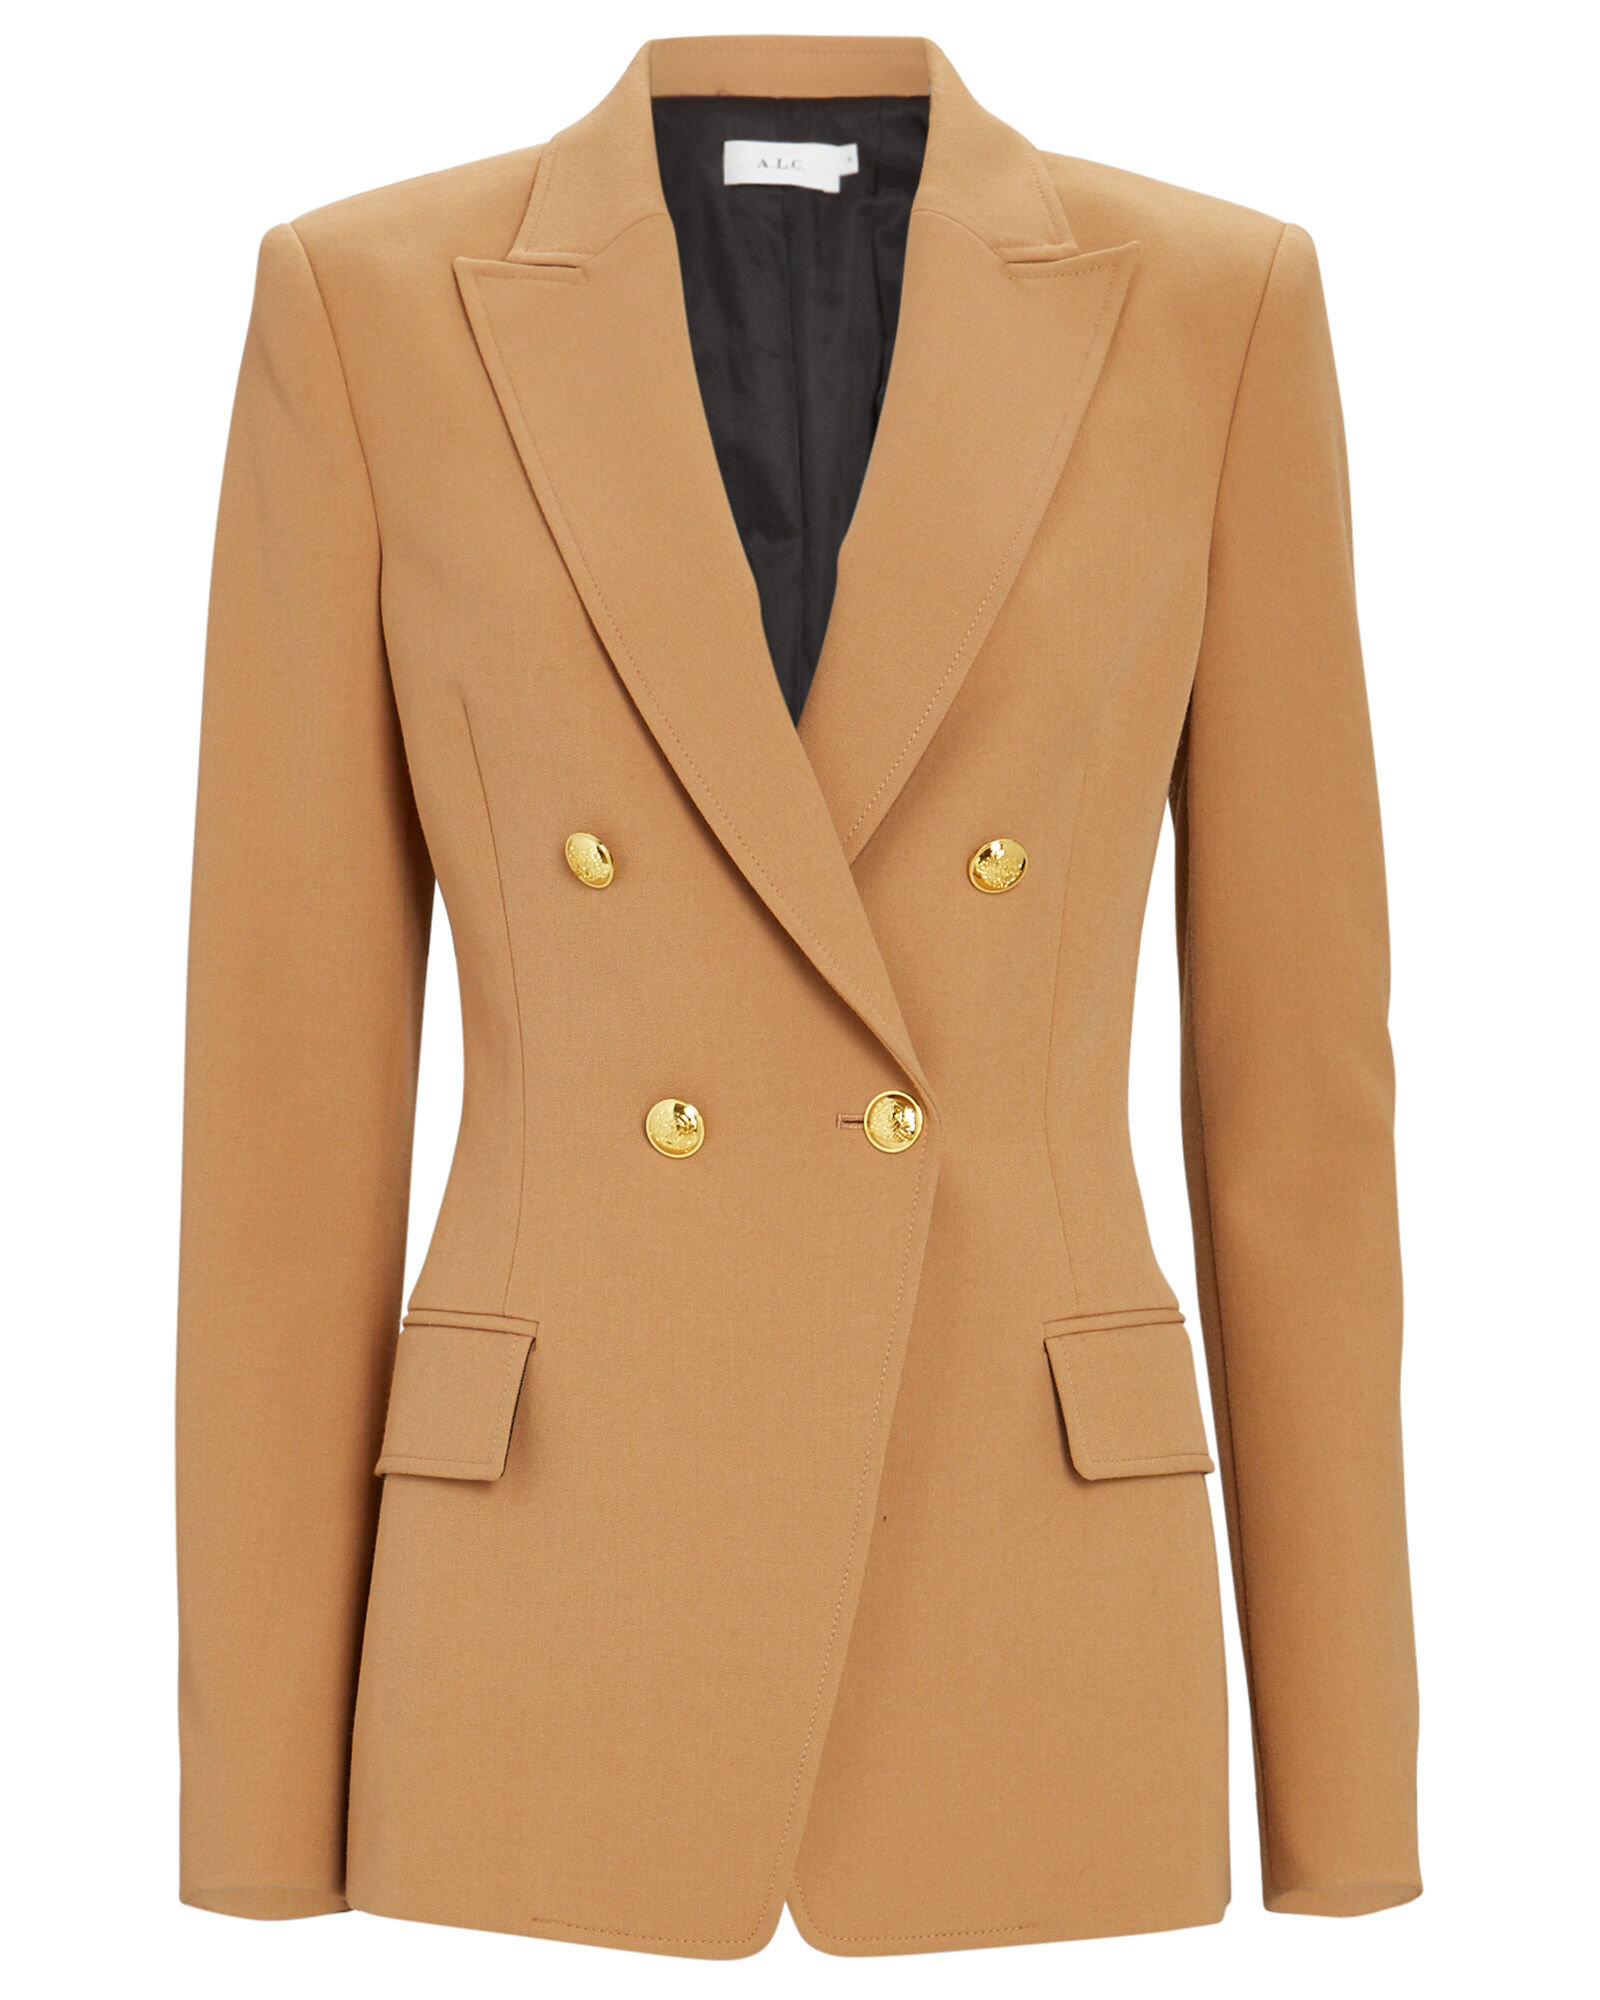 Sedgwick Double-Breasted Blazer, BROWN, hi-res